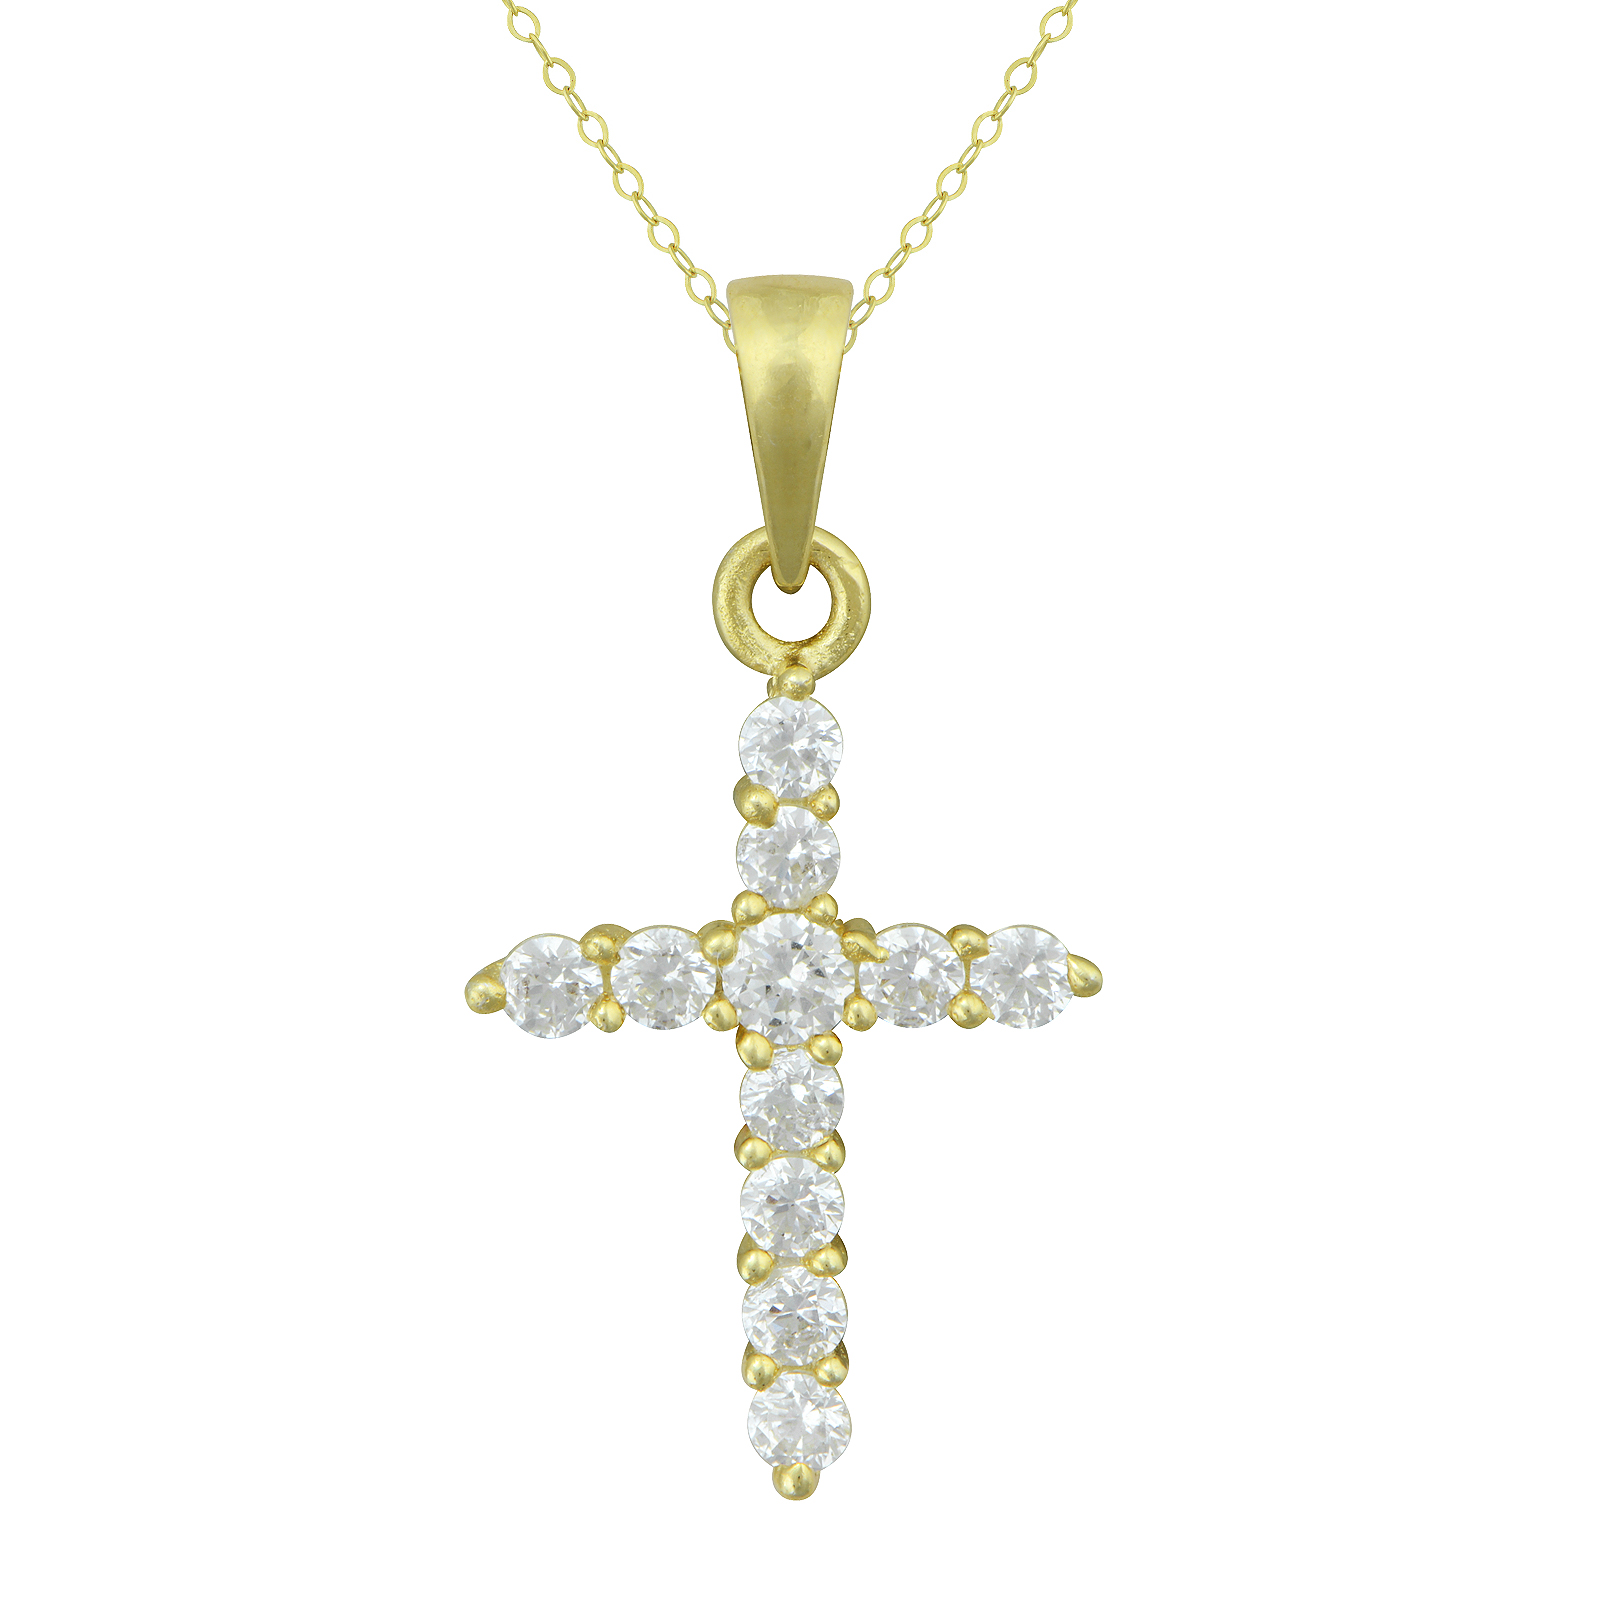 Gold over Silver Cubic Zirconia Cross Pendant with 15